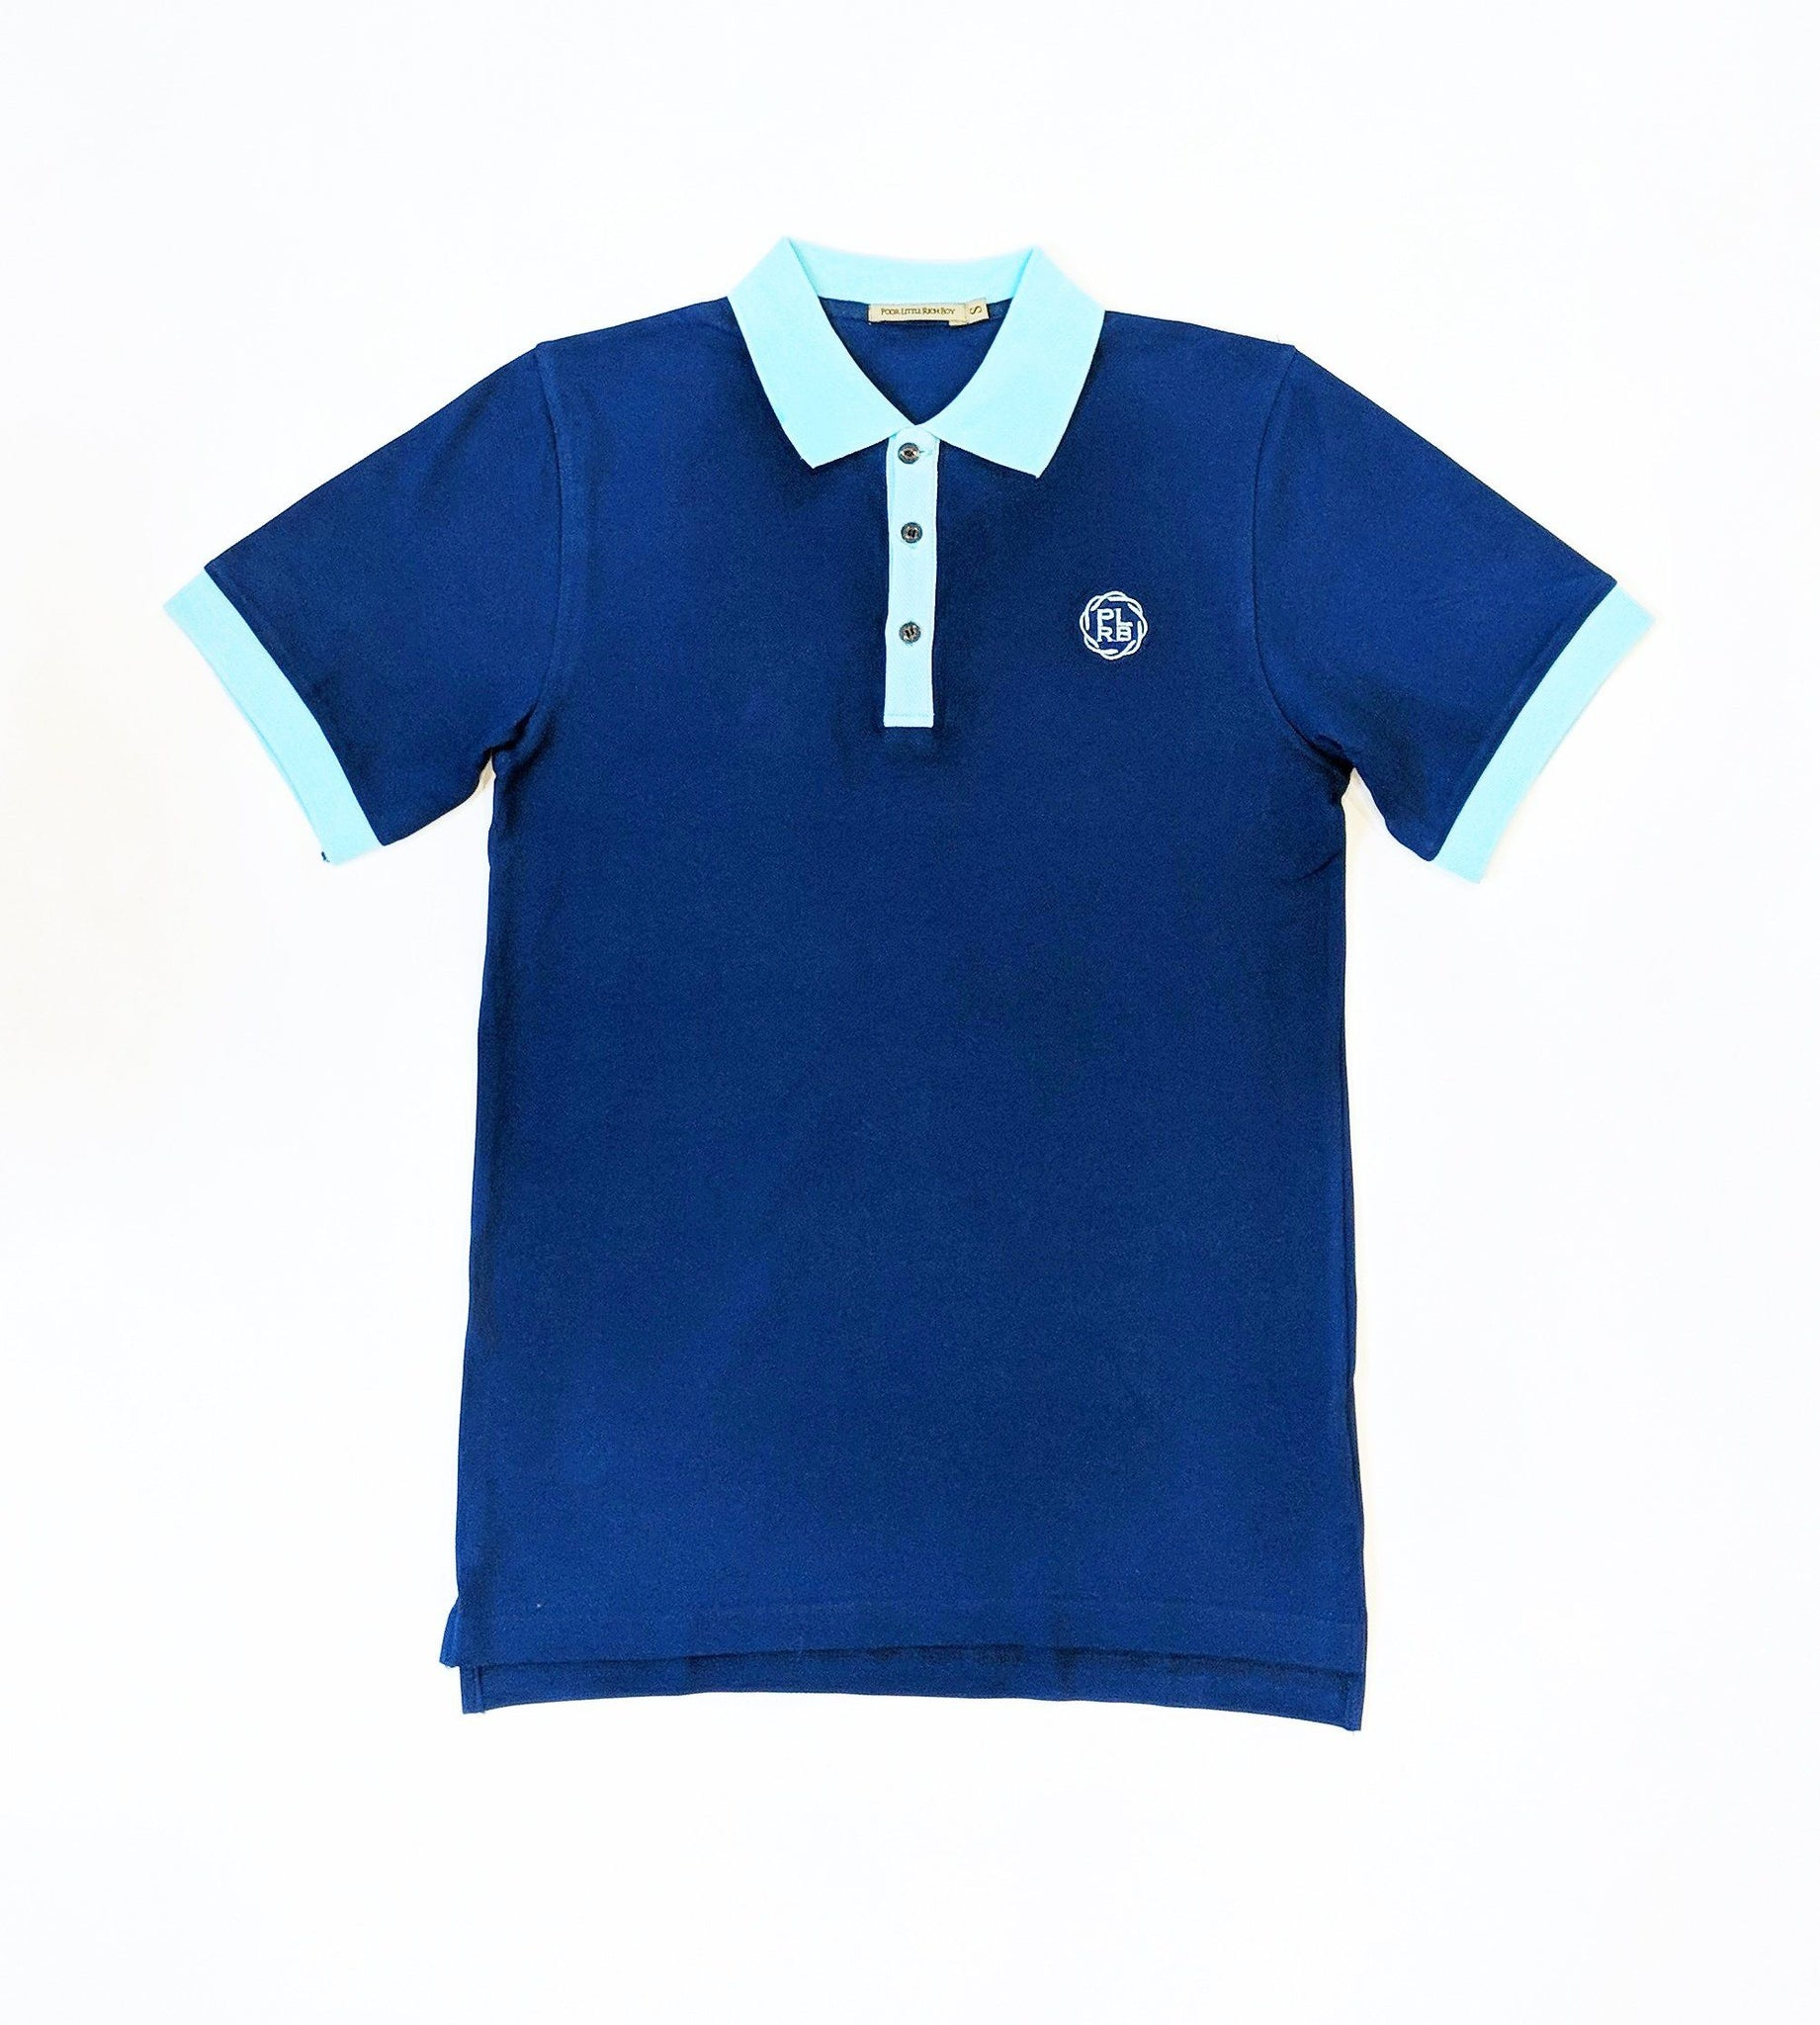 """HEALDSBURG"" POLO SHIRT IN NAVY BLUE"